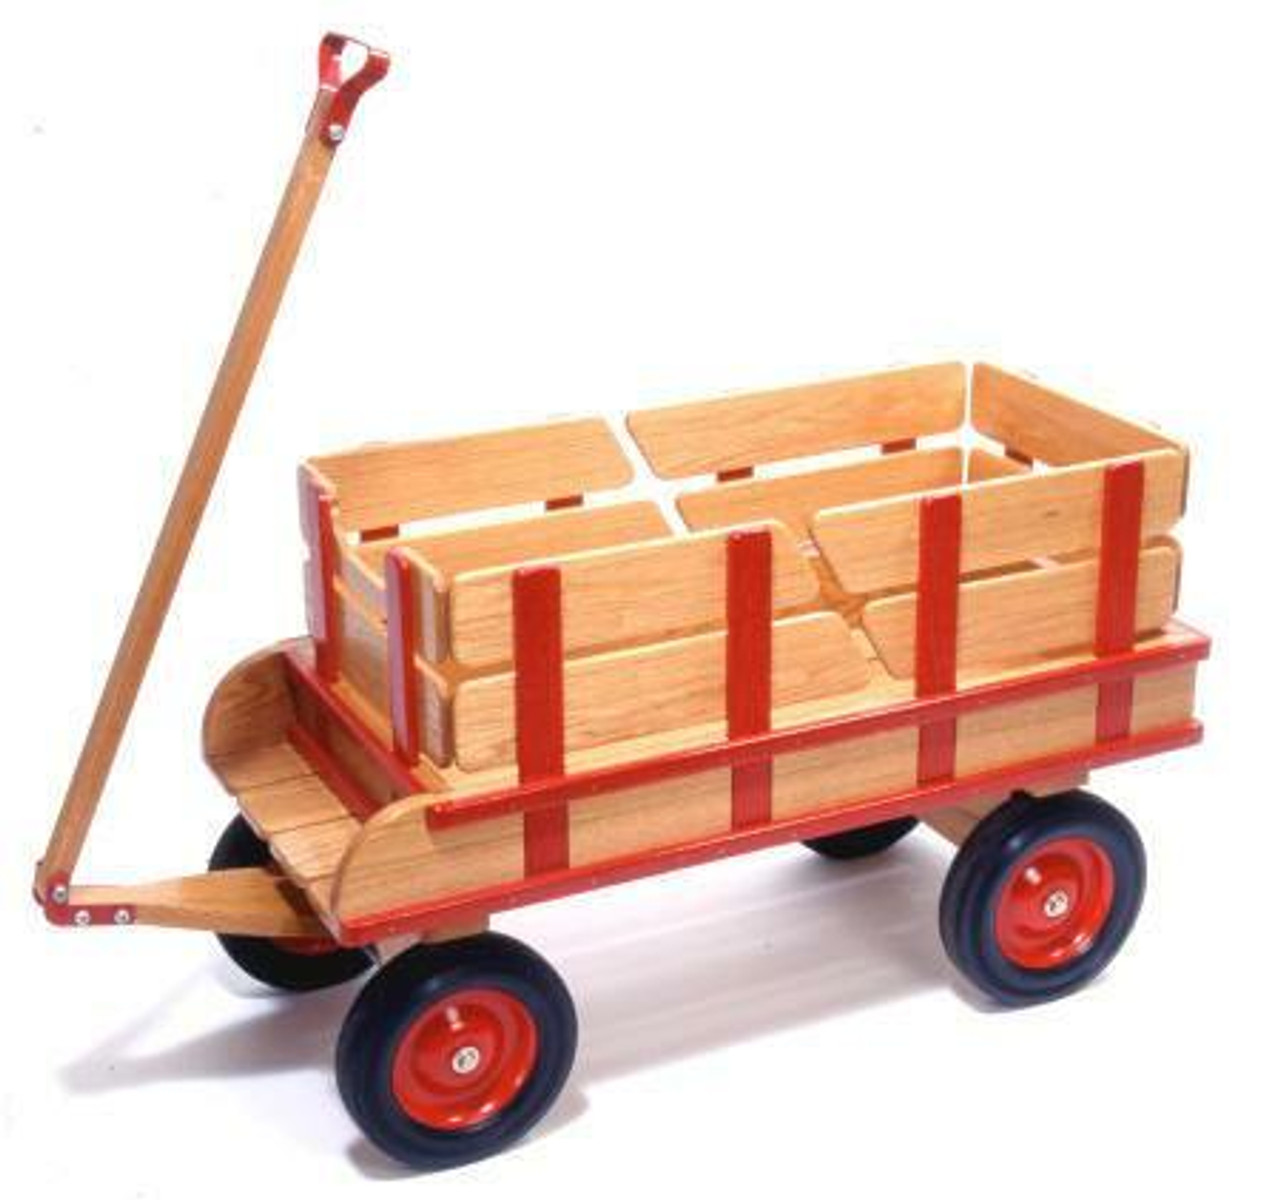 Armor Crafts Classic Wagon Woodworking Plan